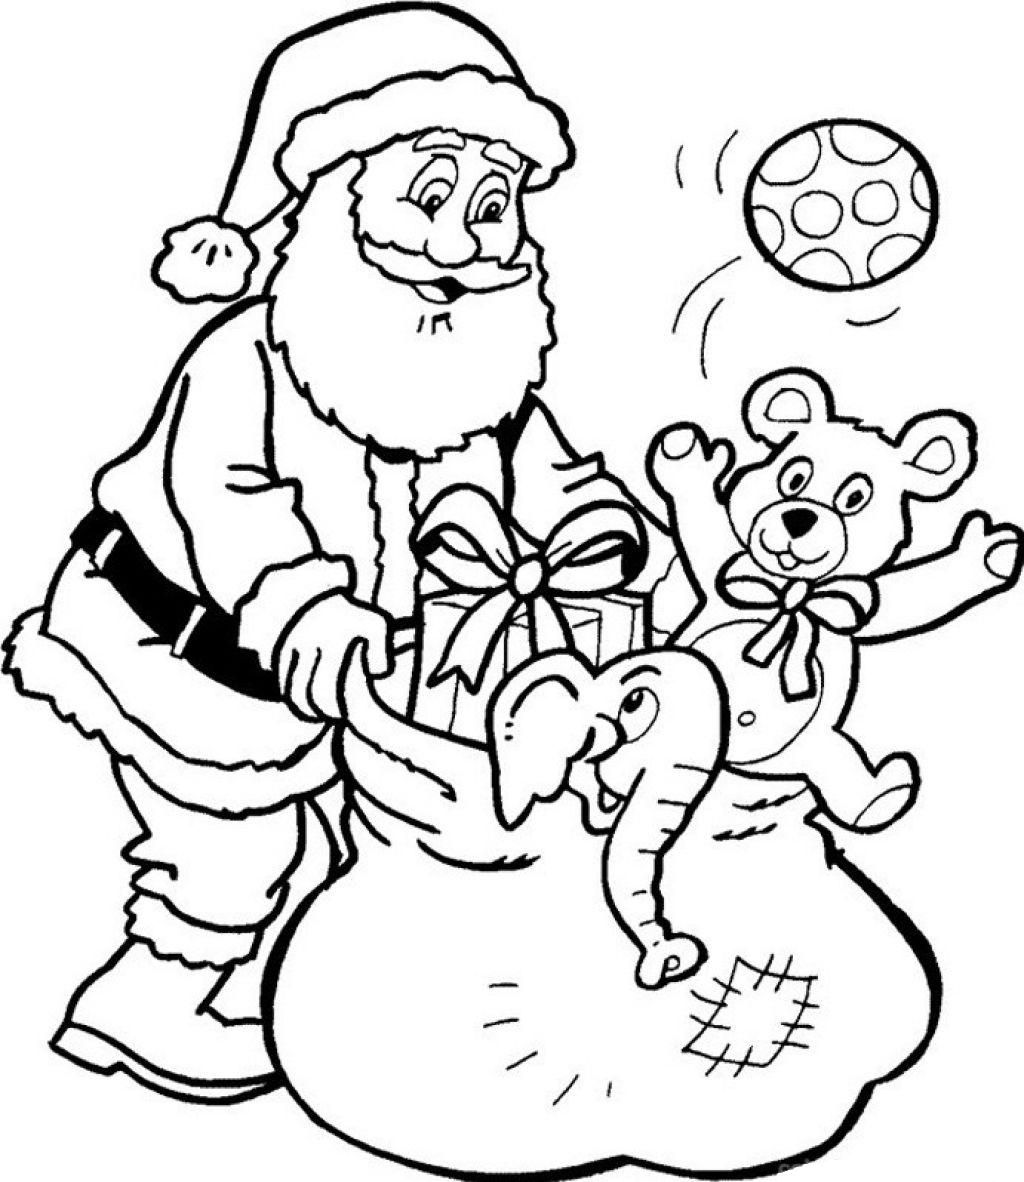 Santa Wreath Coloring Pages With Claus And Presents Printable Christmas Some